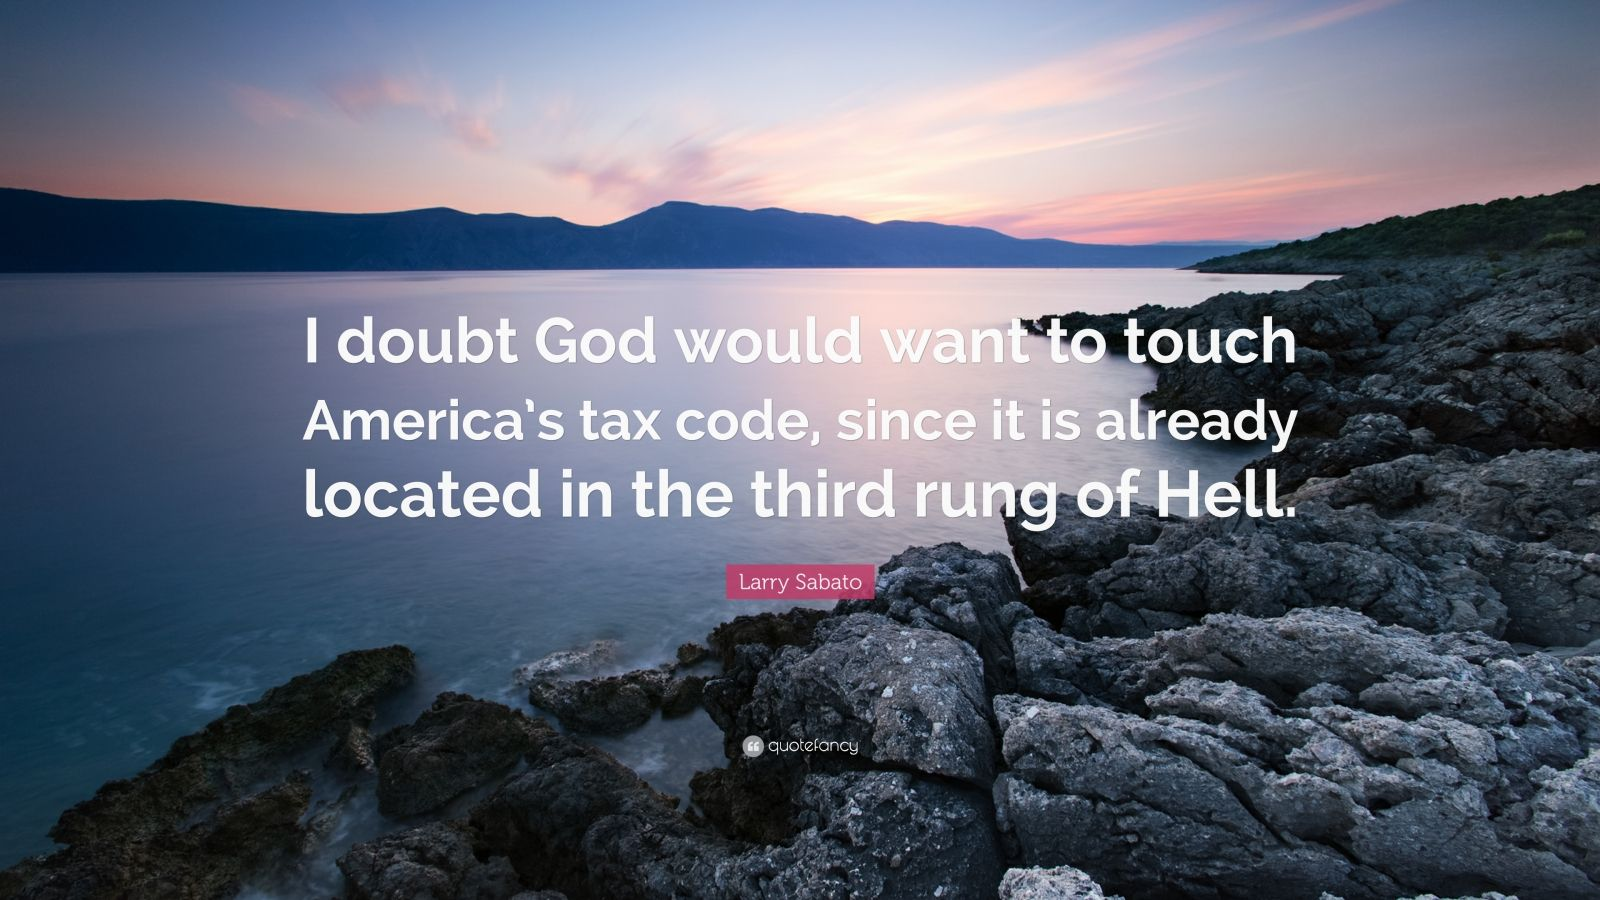 """Larry Sabato Quote: """"I doubt God would want to touch America's tax code, since it is already located in the third rung of Hell."""""""